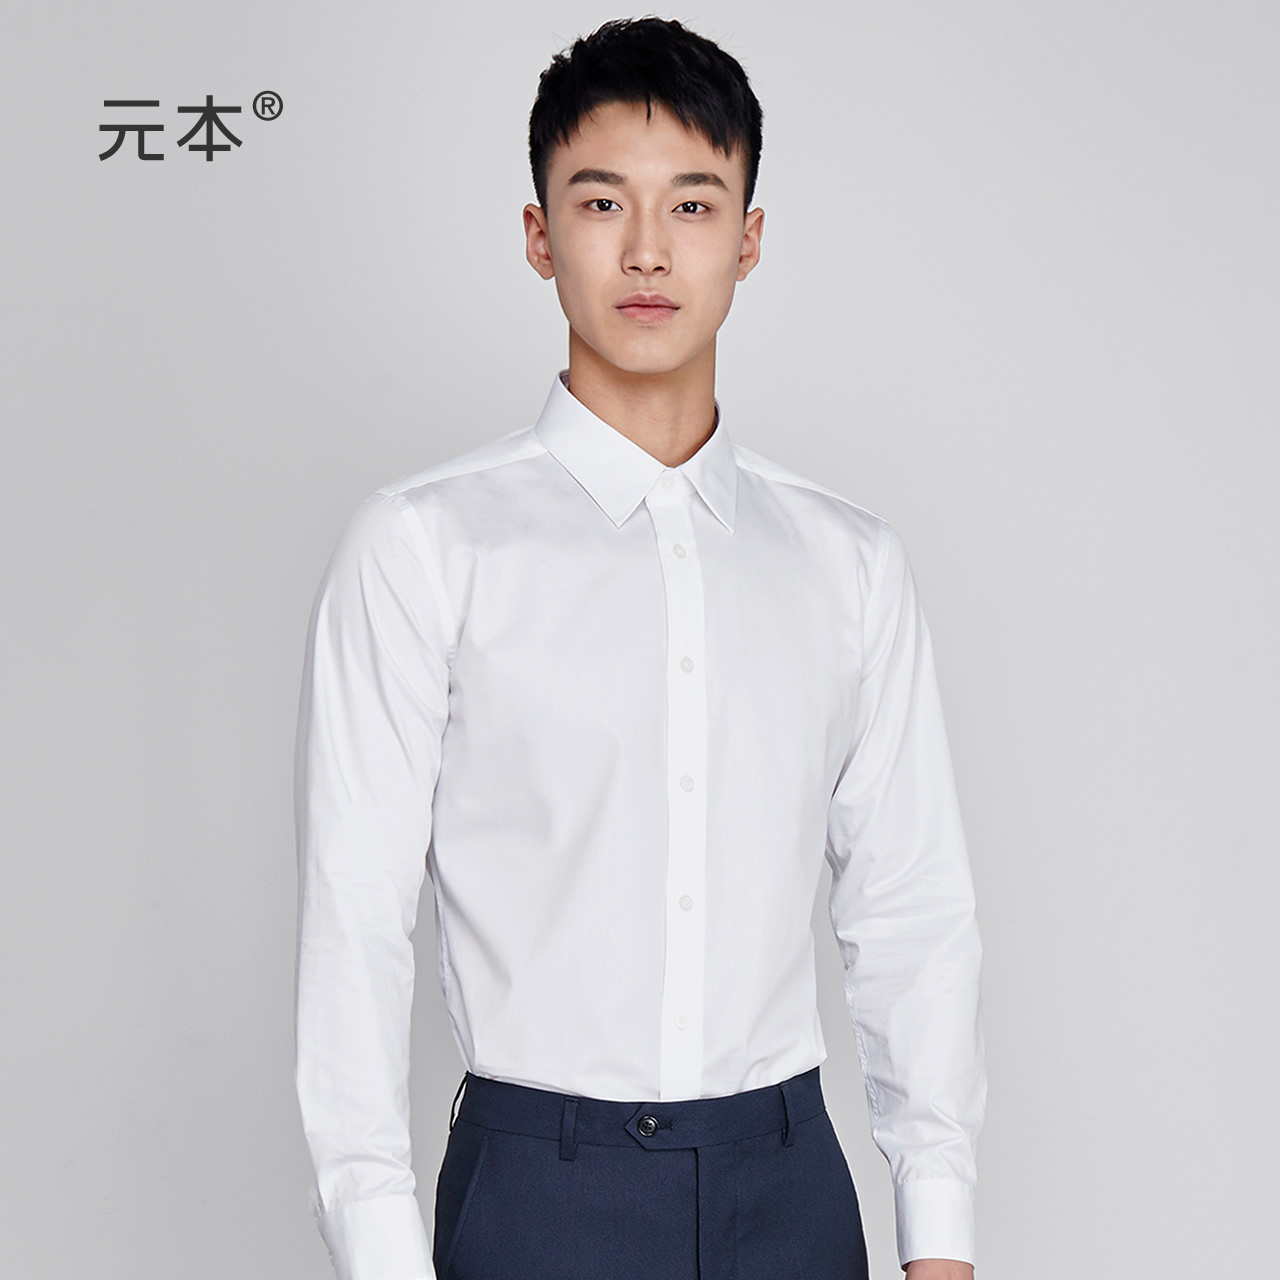 Yuanben white shirt men's long-sleeved business positive fit fit non-iron inch shirt men's white office suit black shirt